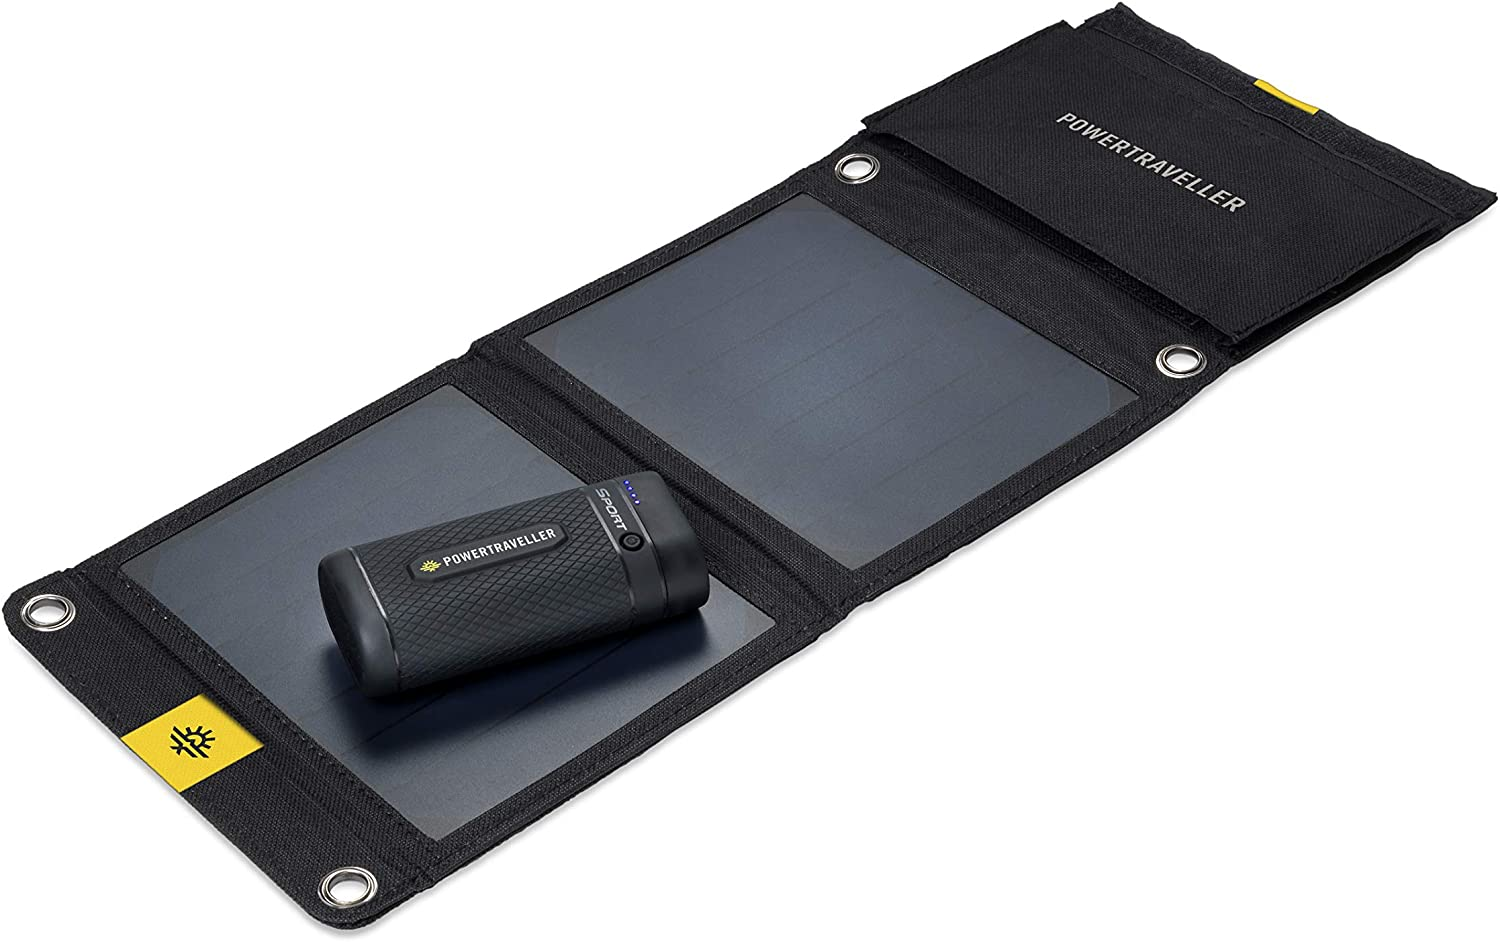 Powertraveller Sport 25 Solar Kit: Portable Outdoor Solar Charger & 6700mAh Power Bank – USB-C Input / Output, 5V USB Quick Charge, Integrated Torch, 7-Watt Folding Solar Panel, Perfect Portable Charg